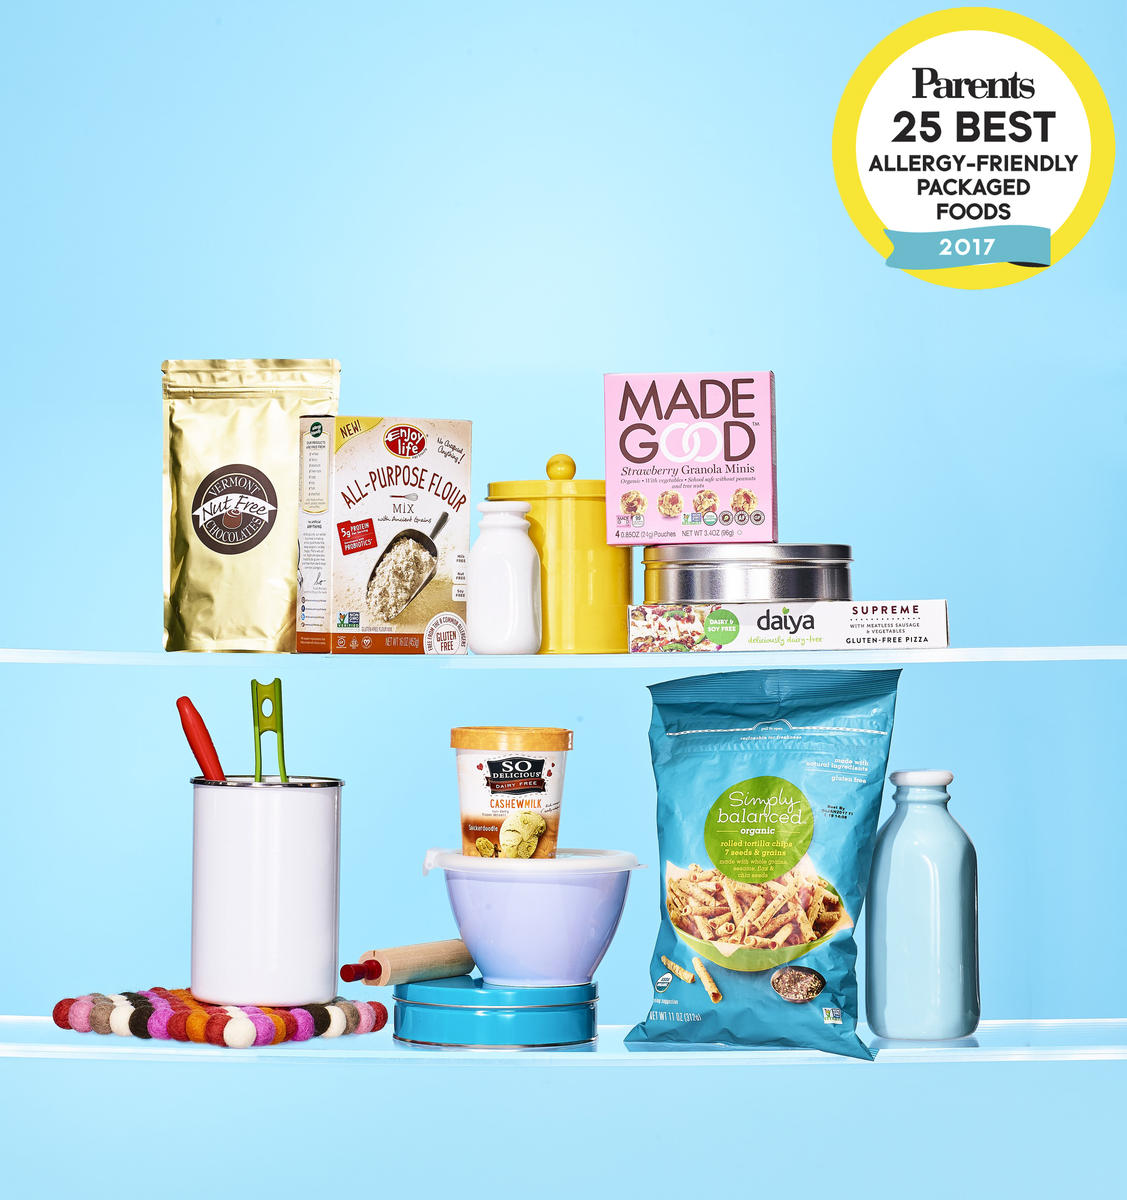 Parents Magazine S 25 Best Allergy Friendly Packaged Foods